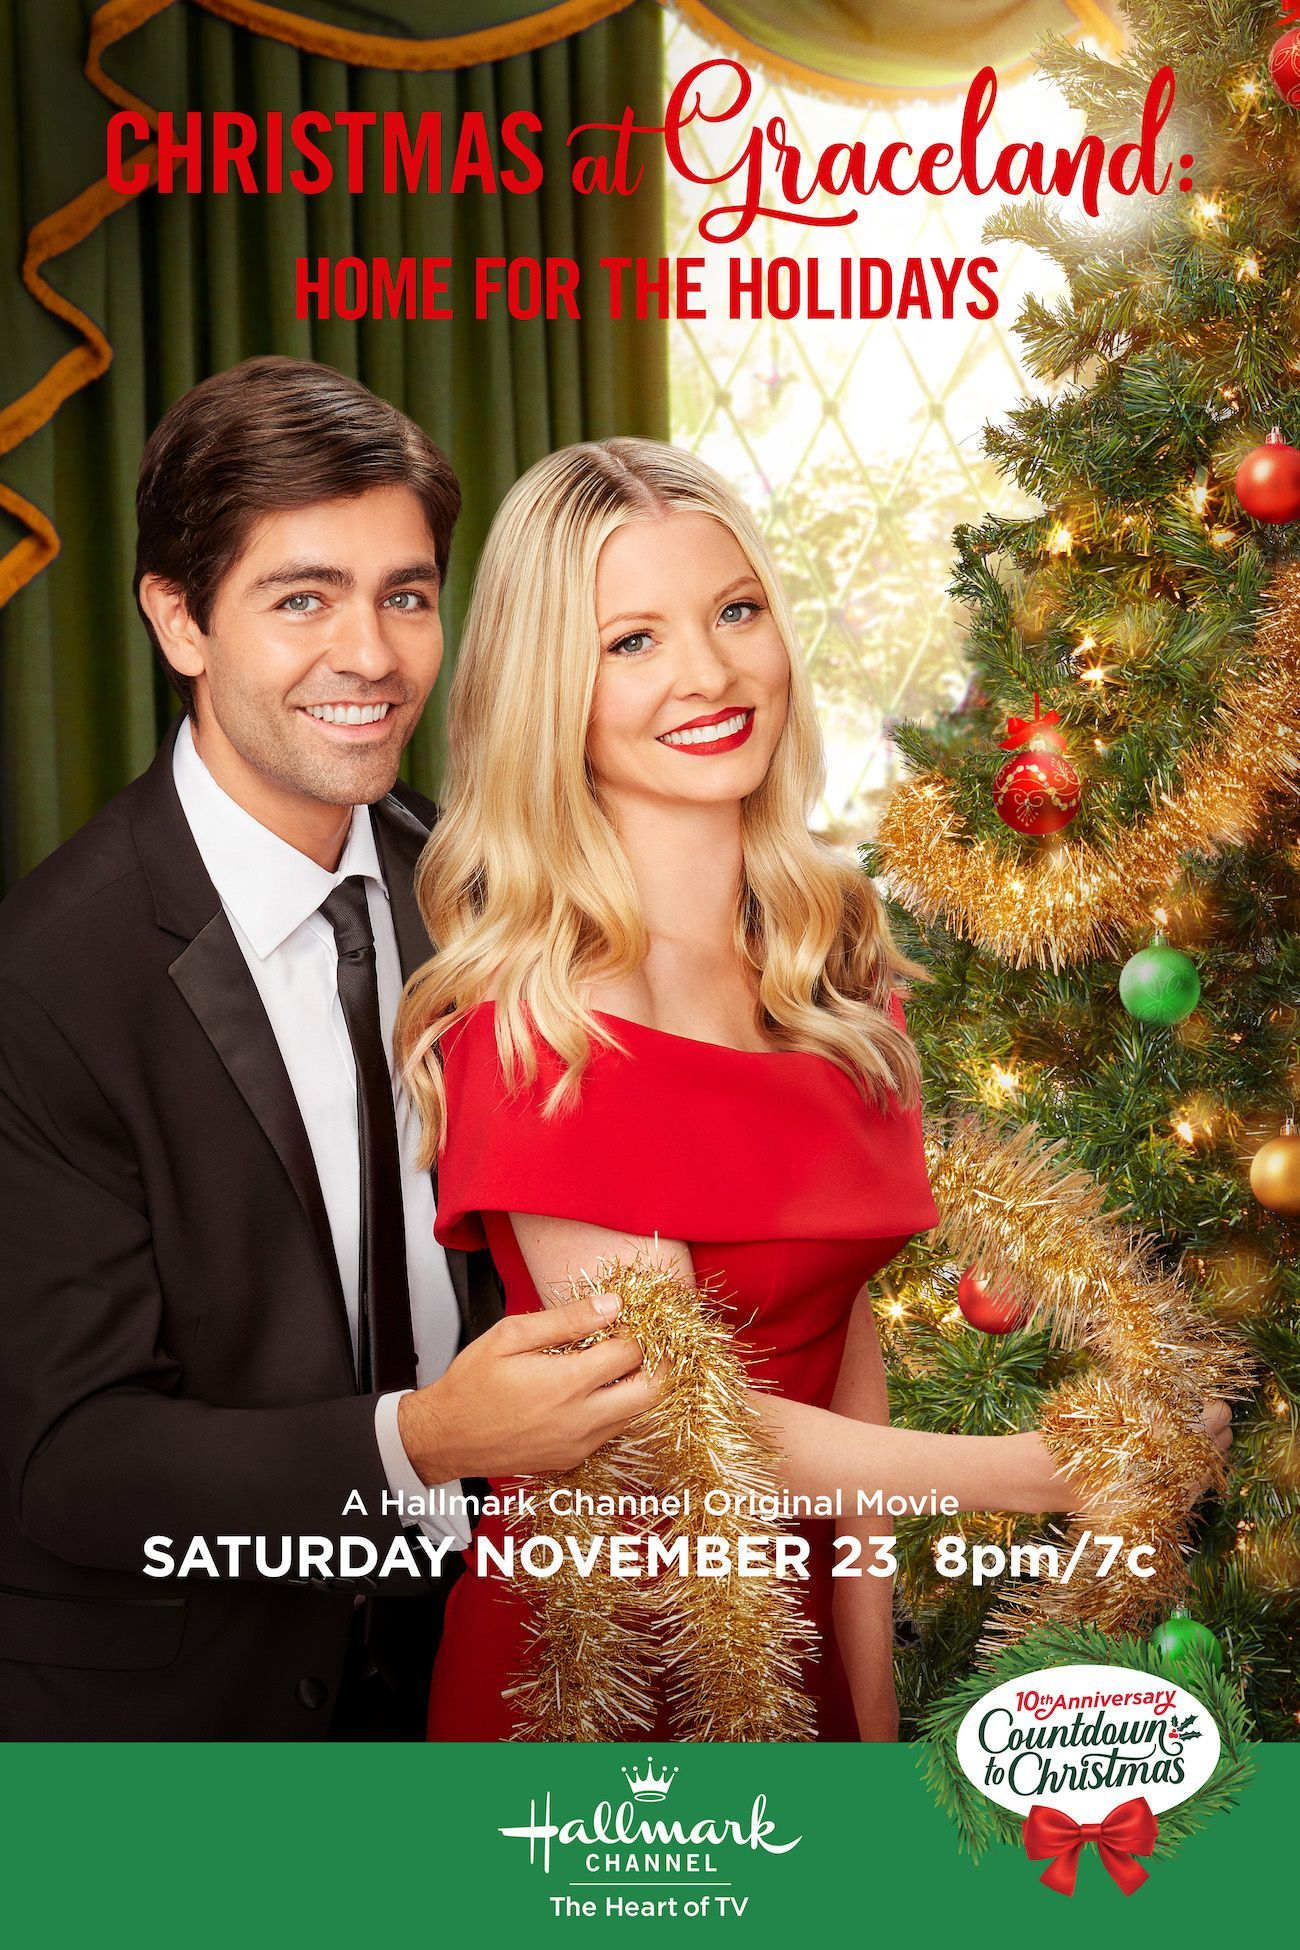 Adrian Grenier And Kaitlin Doubleday Star In Christmas At Graceland Home F Hallmark Channel Christmas Movies Hallmark Christmas Movies Christmas Movies On Tv